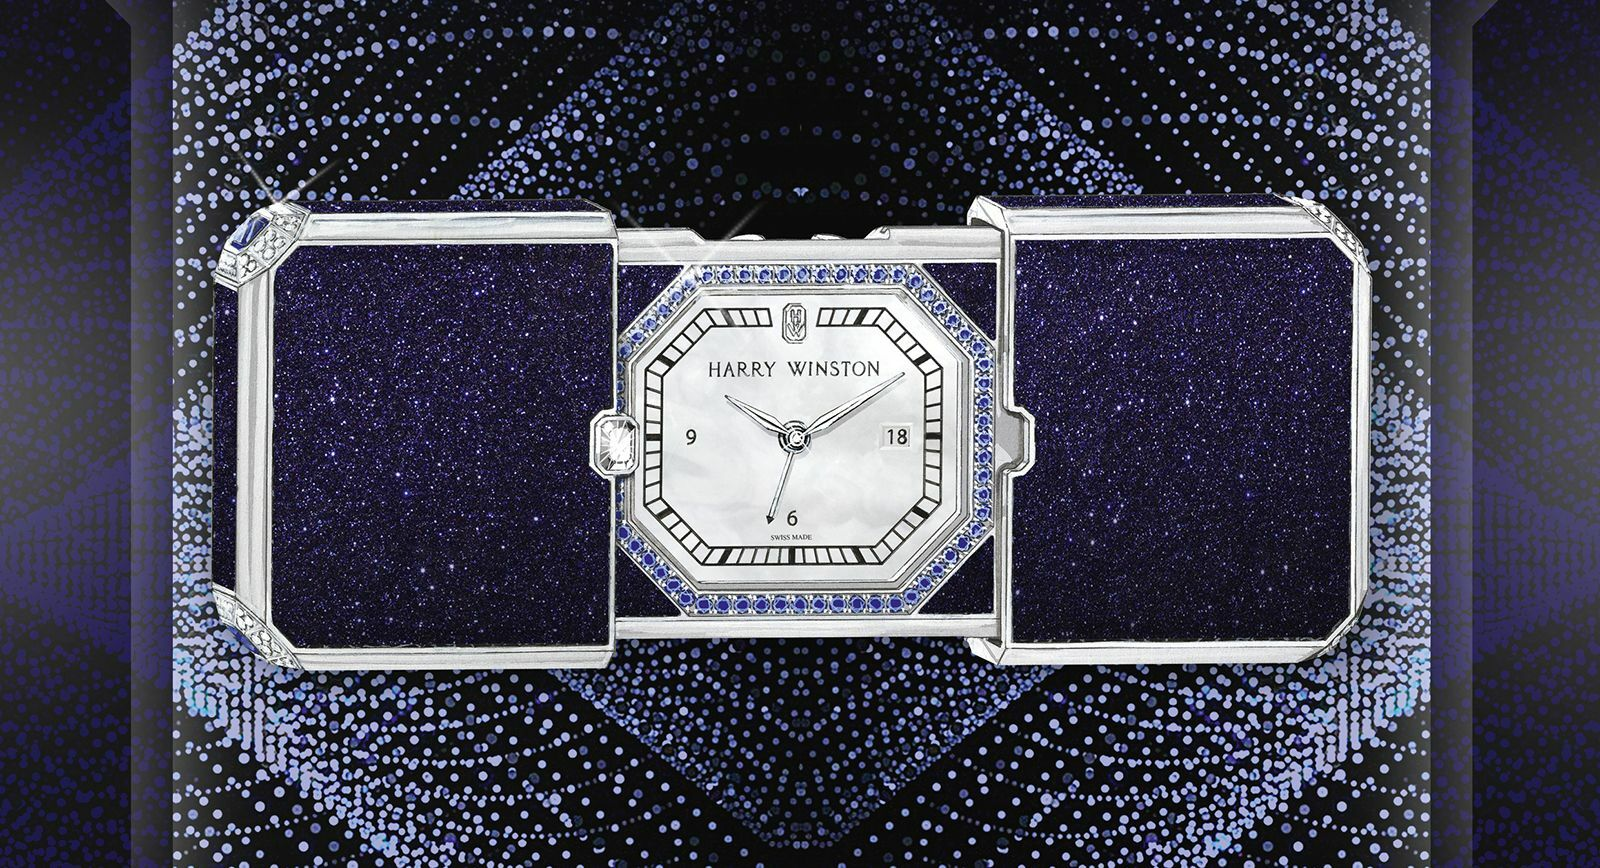 Harry Winston: The jewelled race against time